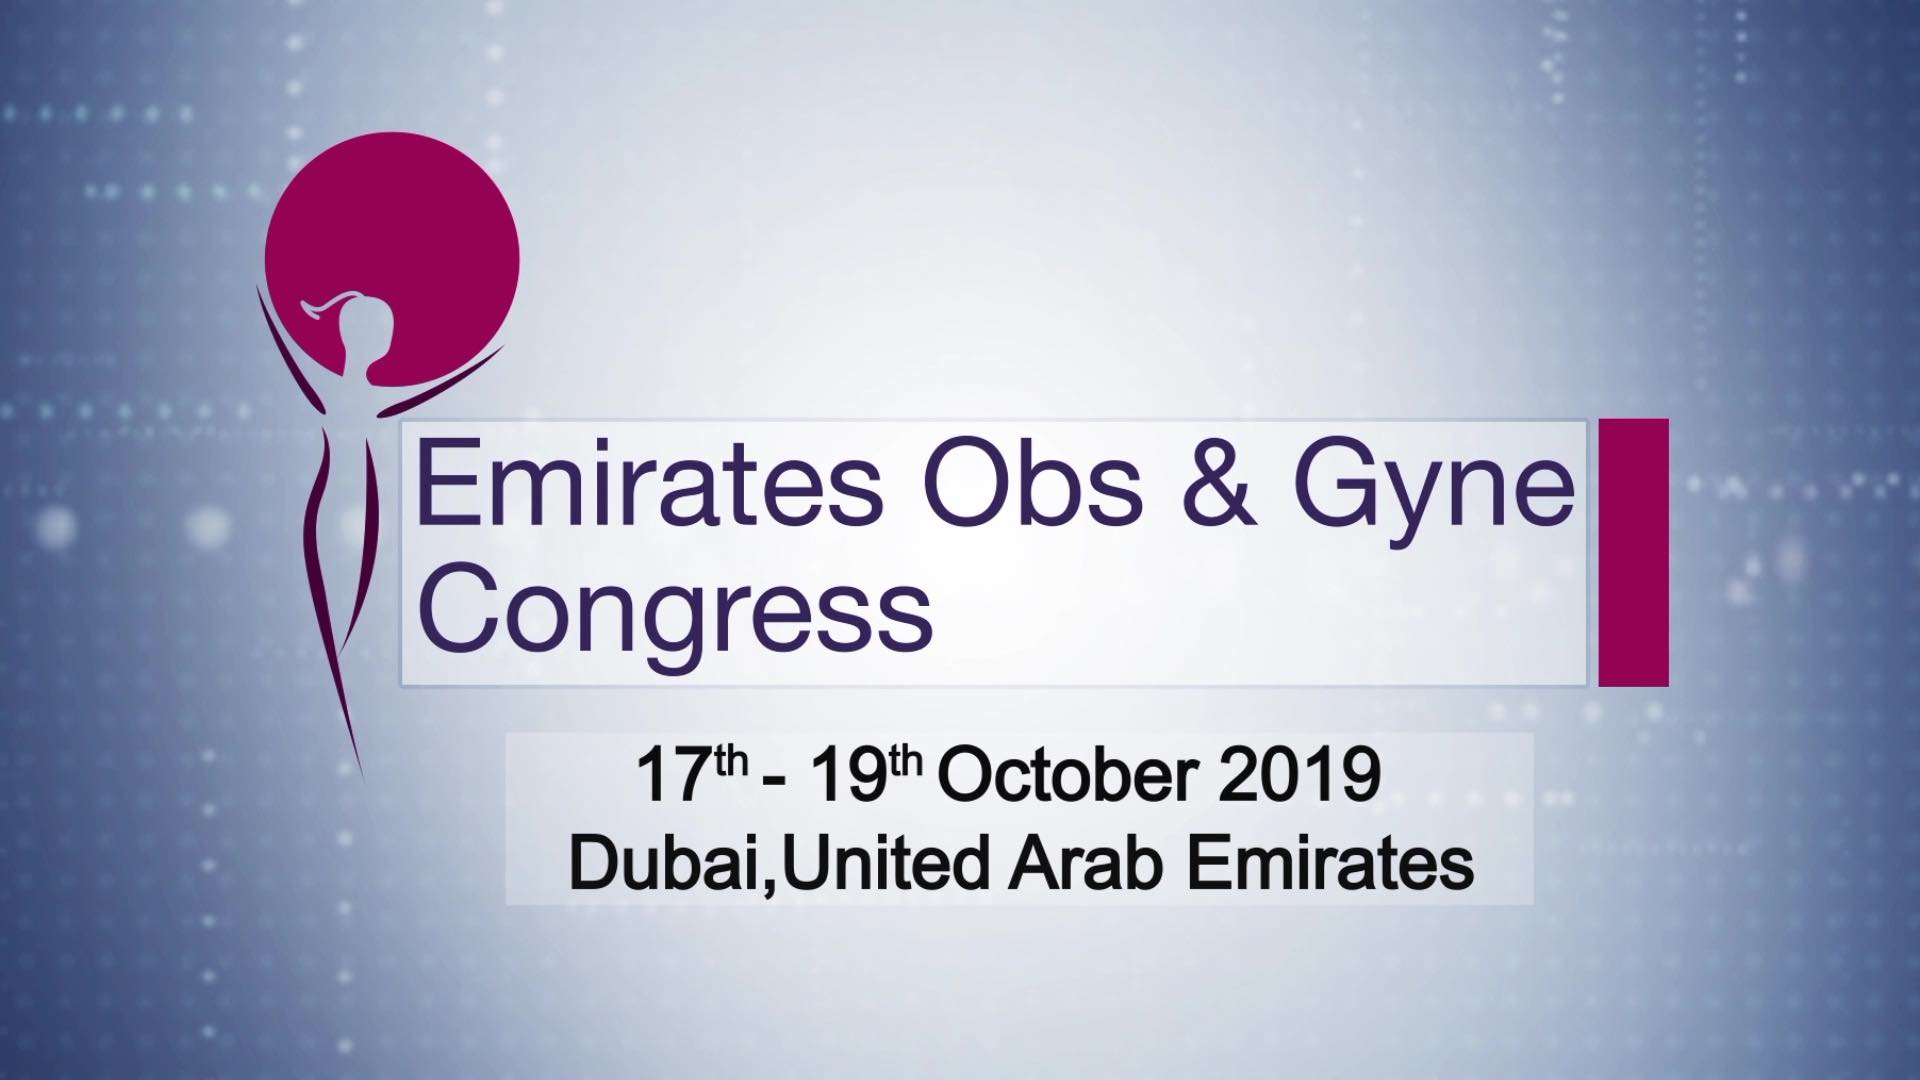 Emirates Obs & Gyne Congress Dubai 2019